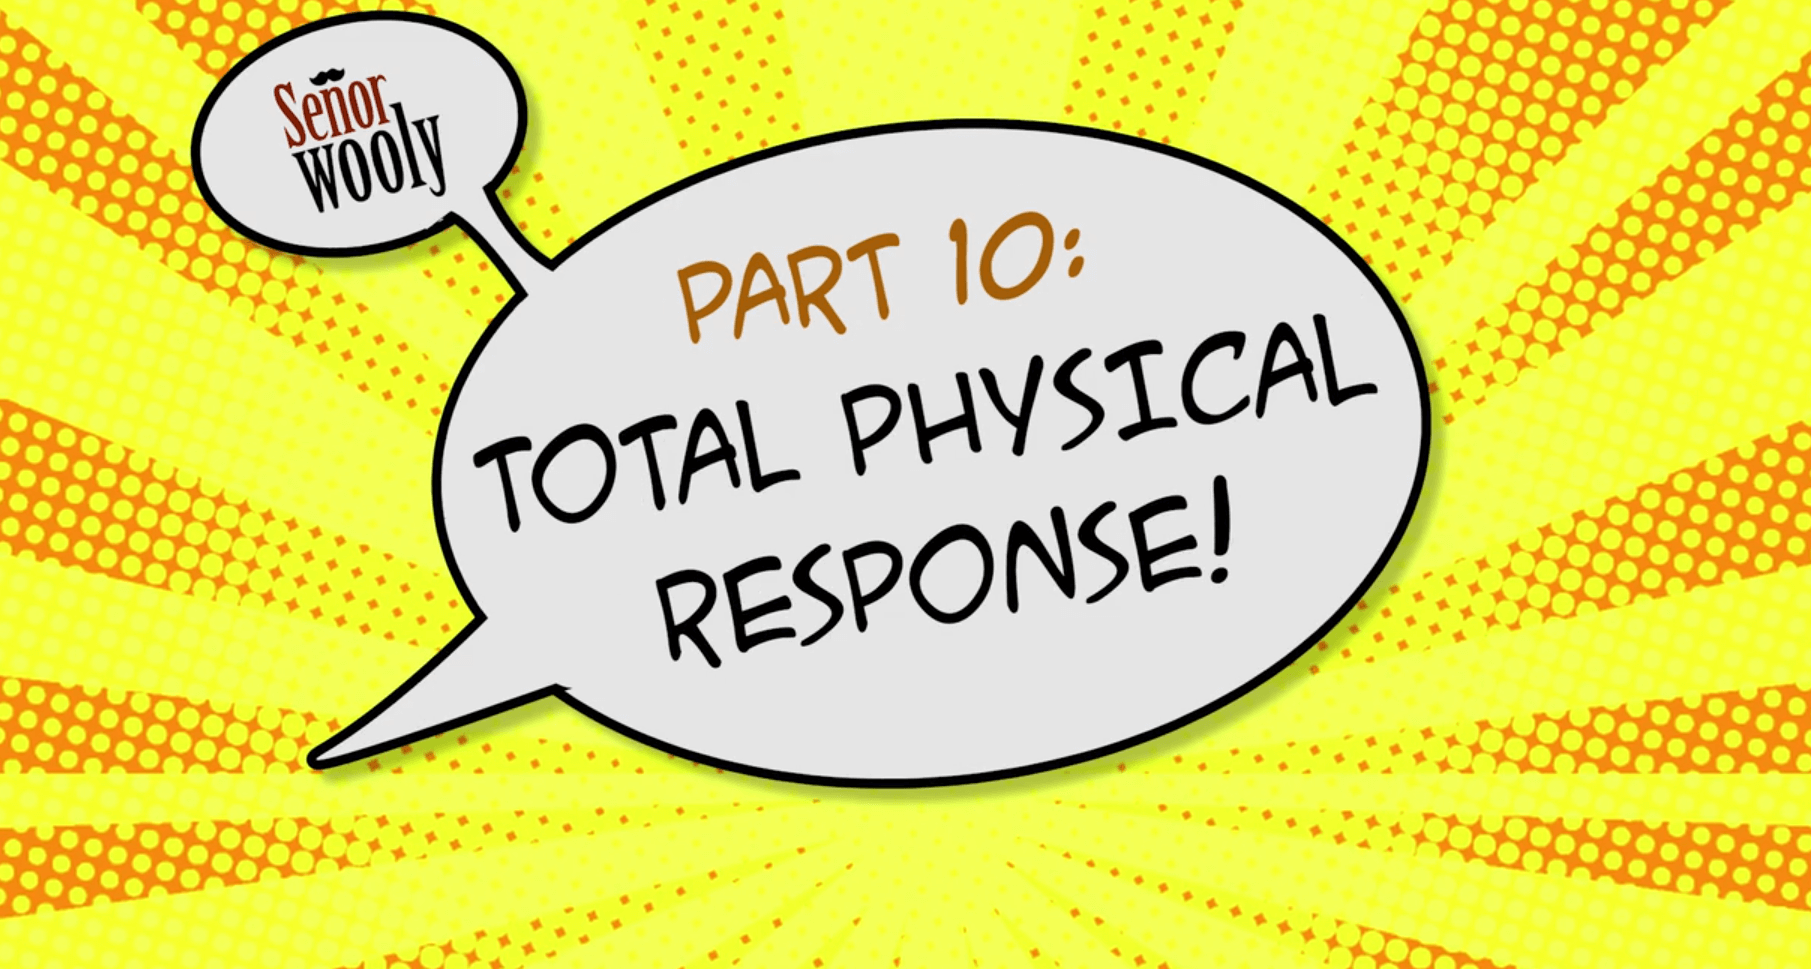 Part 10 - Total Physical Response!